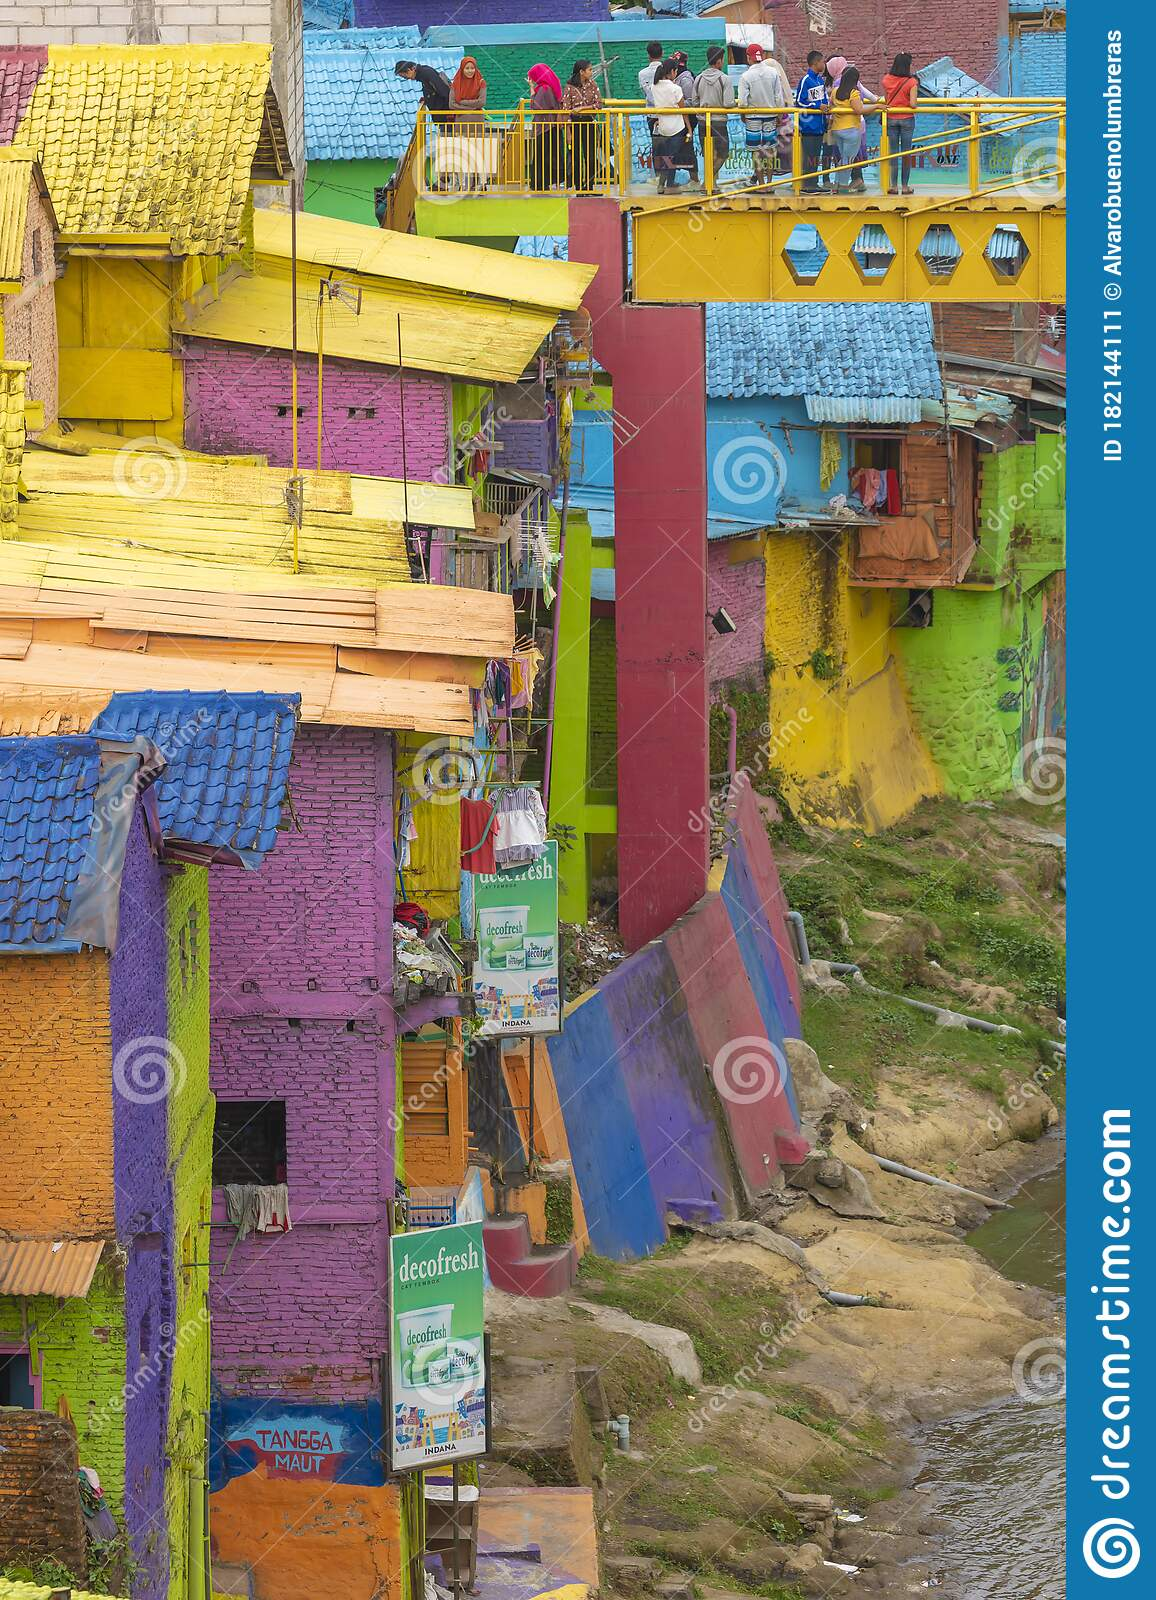 Jodipan A Small Neighborhood In Malang City Indonesia Editorial Photo Image Of Purple Indonesia 182144111